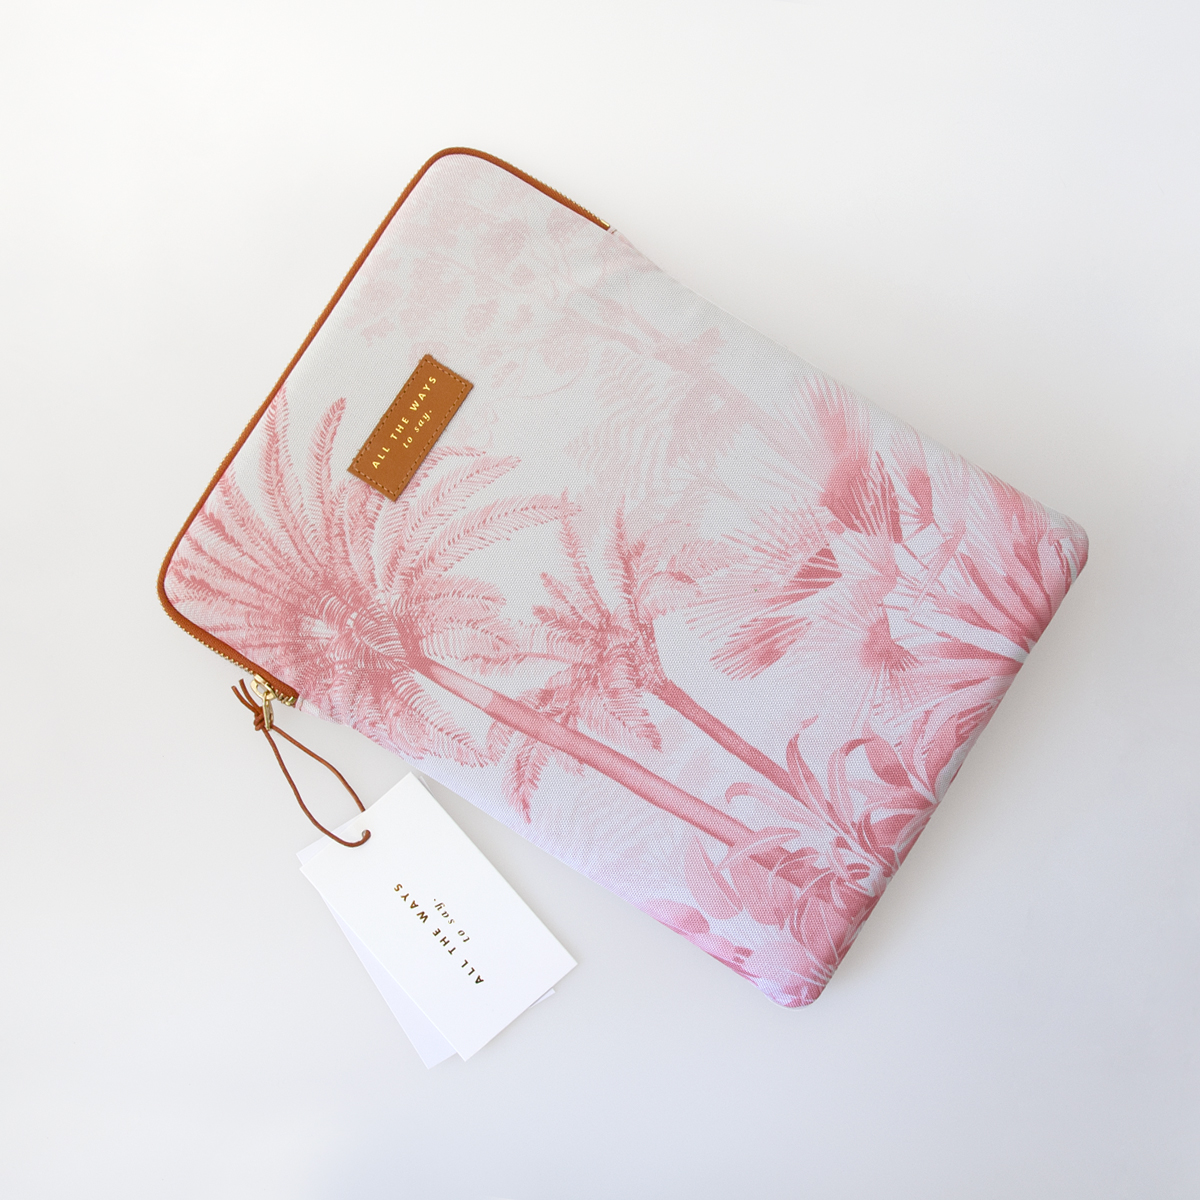 LAPTOP_PINK_FOREST_03